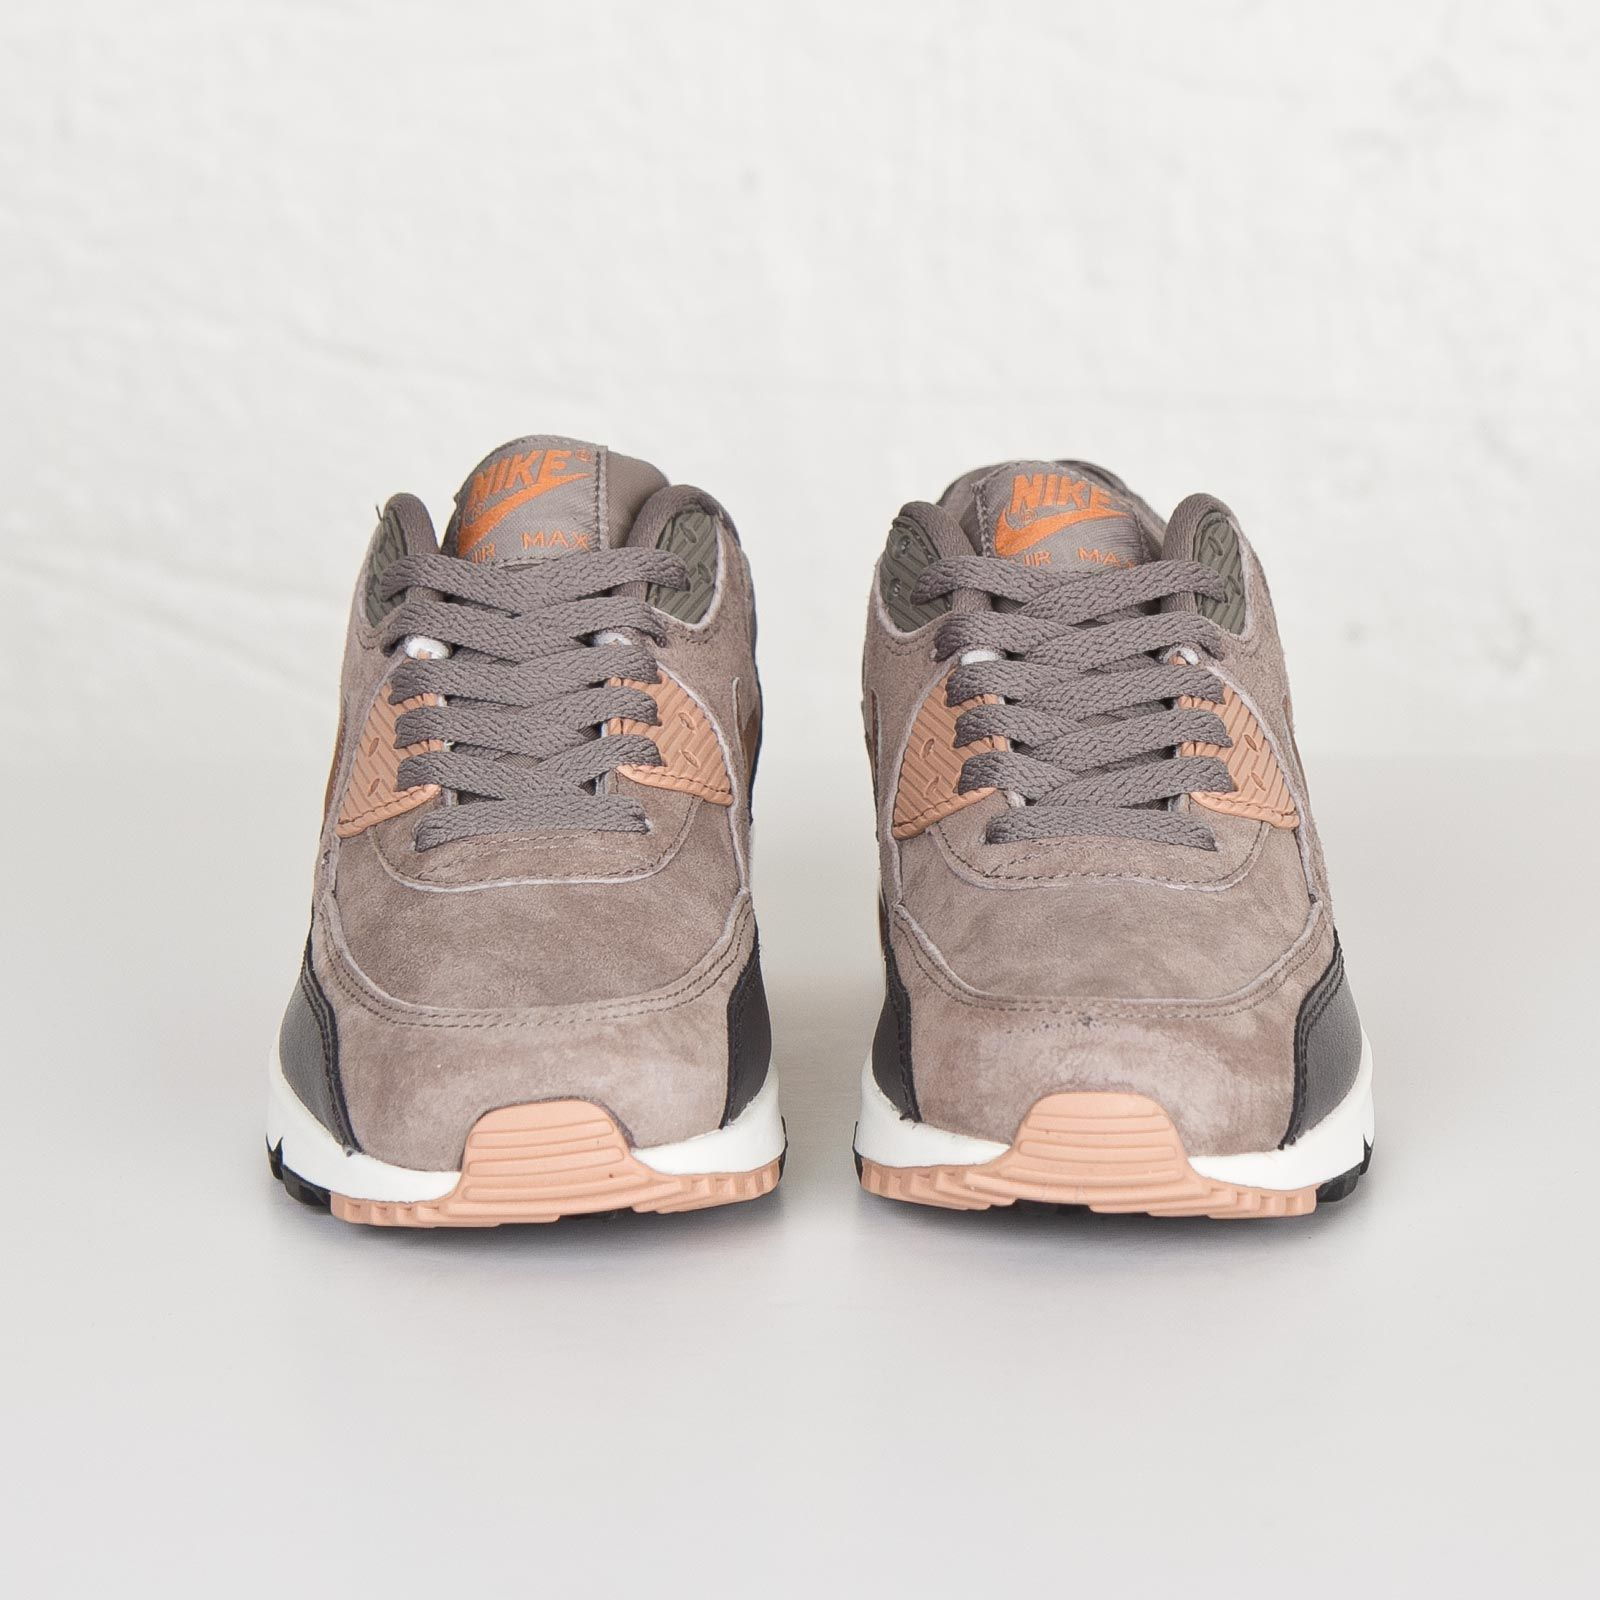 Damen Nike Air Max 90 Leather Ironrote Bronze Sail | Air